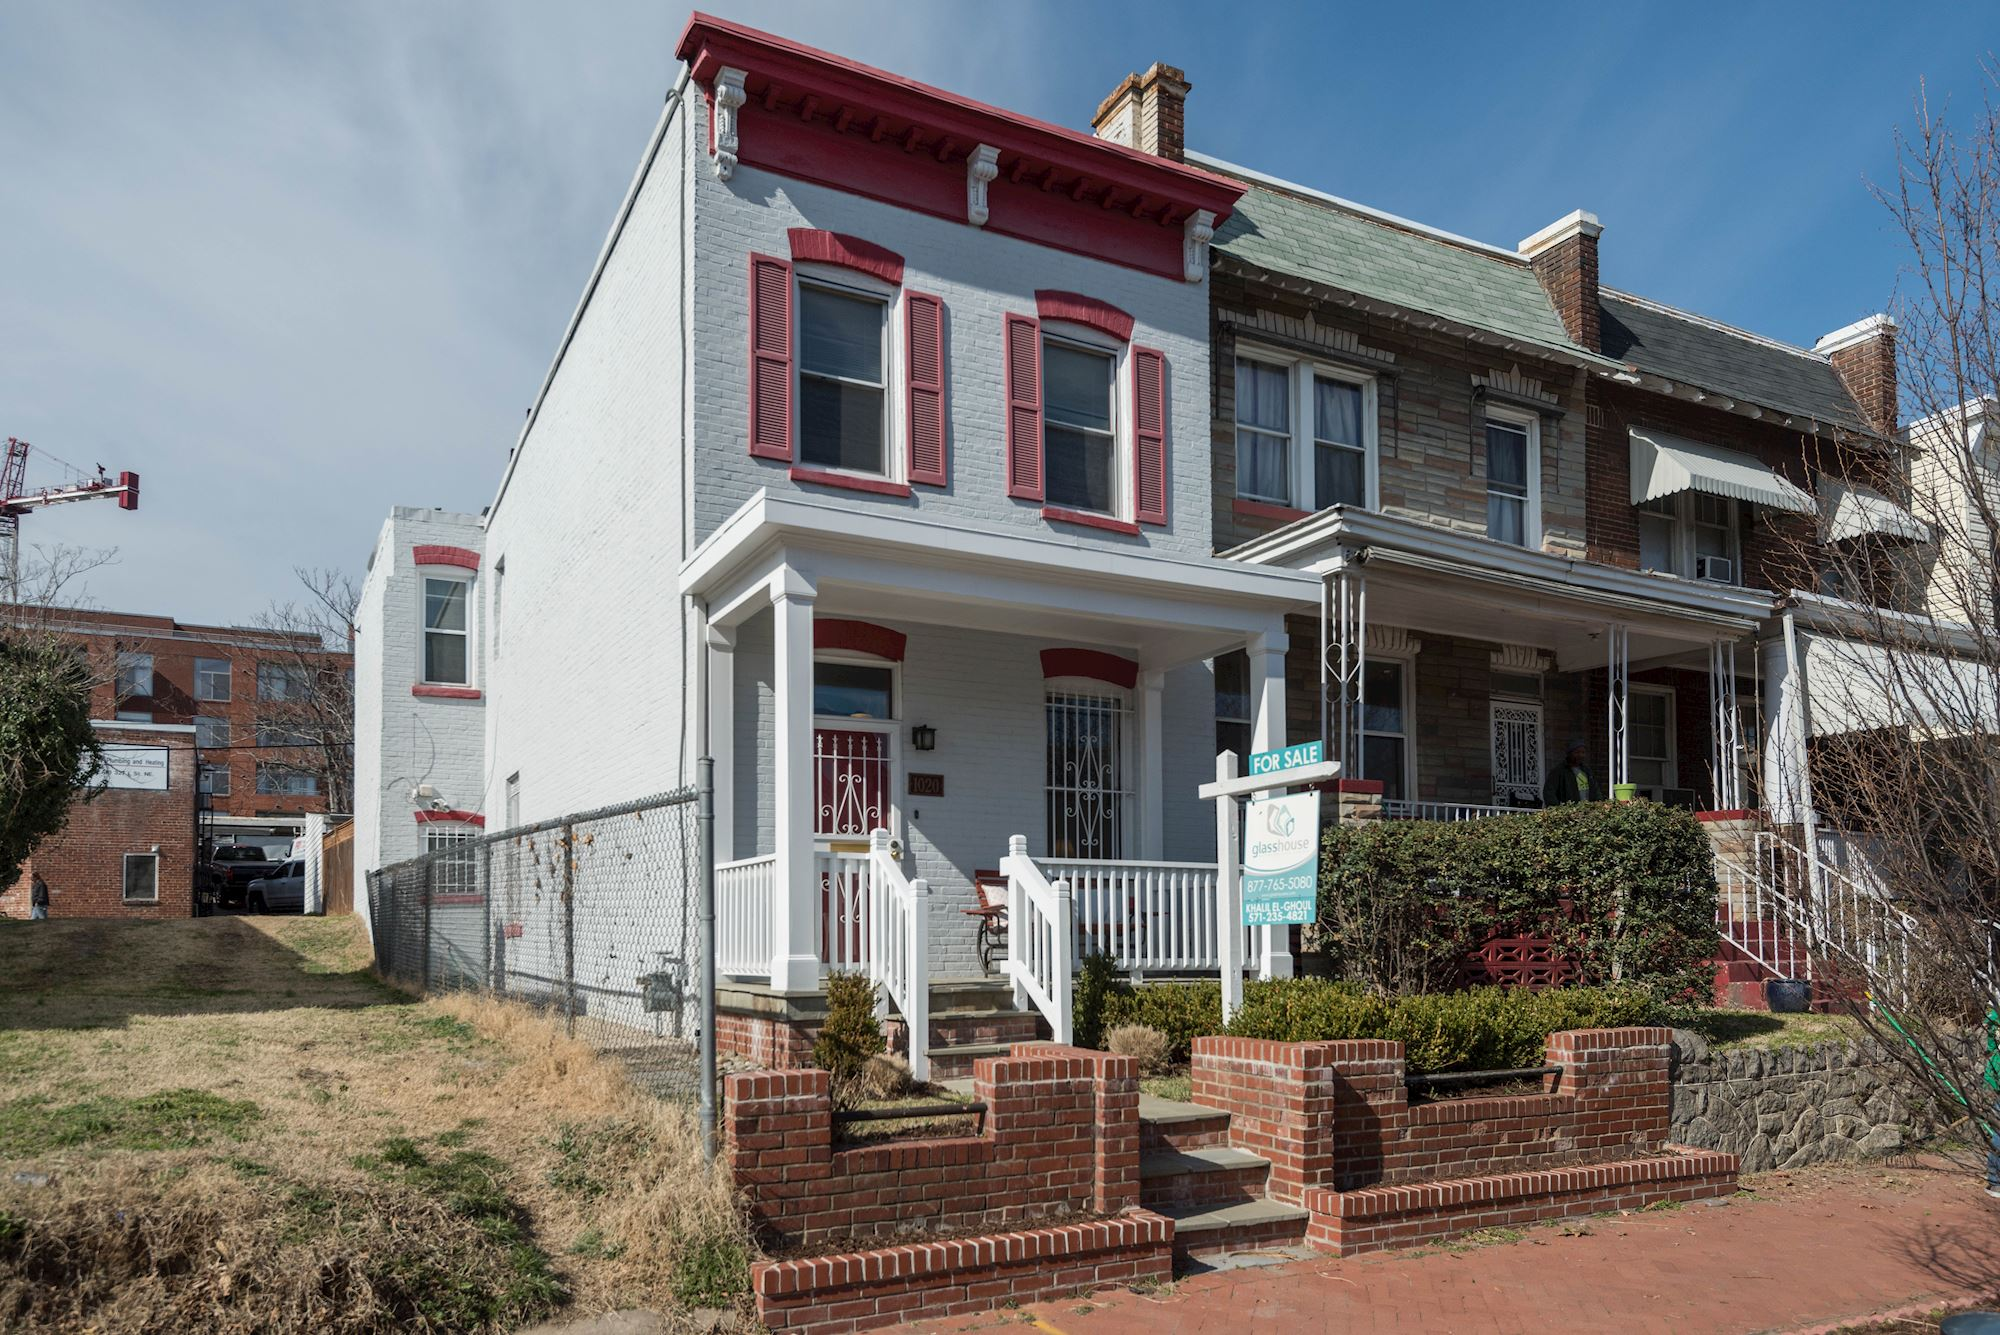 SOLD: Beautifully Renovated Row Home in D.C.